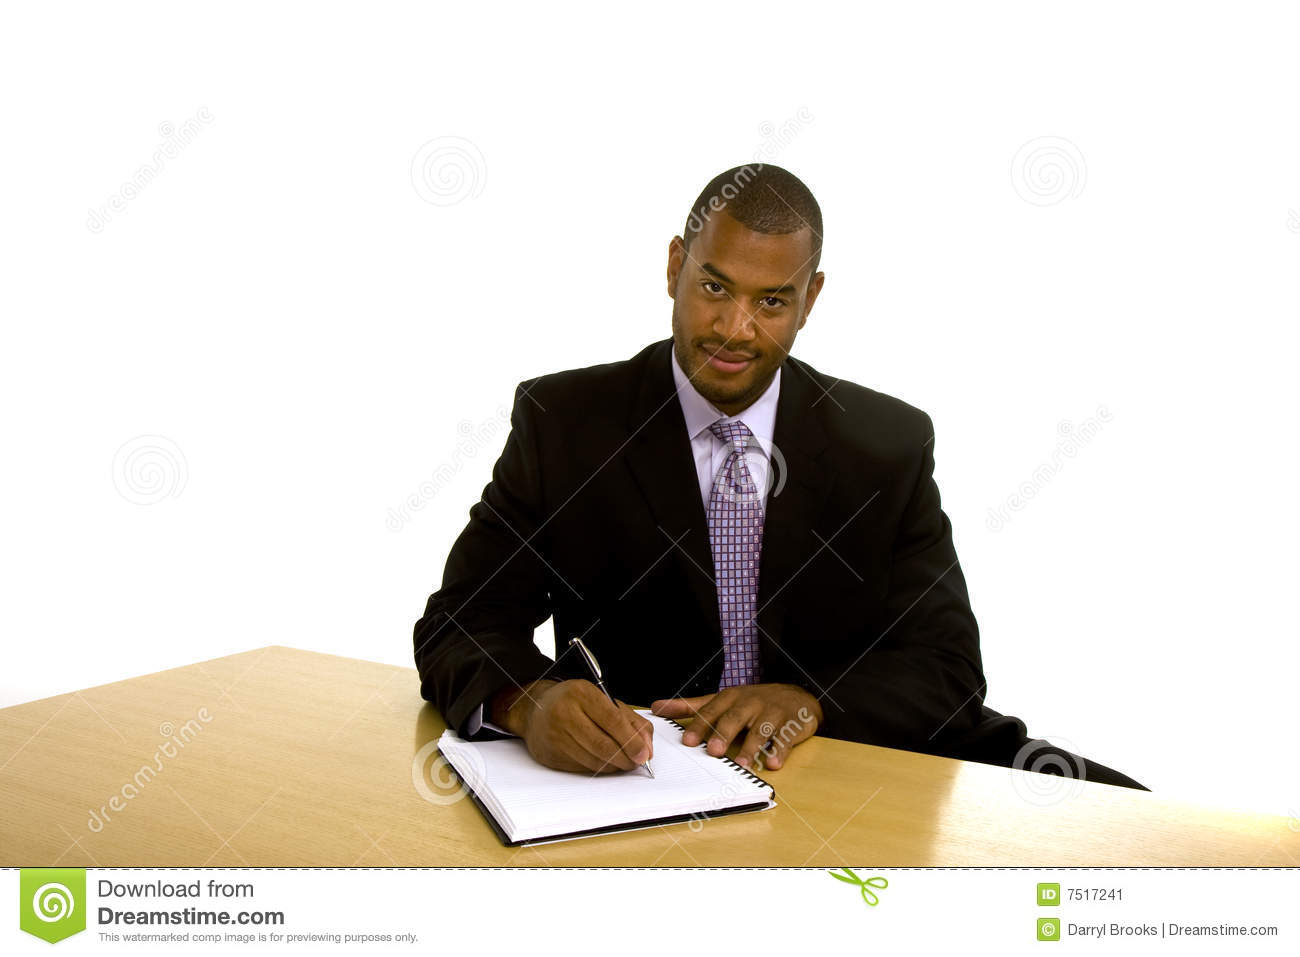 black man writing desk looking camera 7517241 - Fast Products Of papercp In The Uk